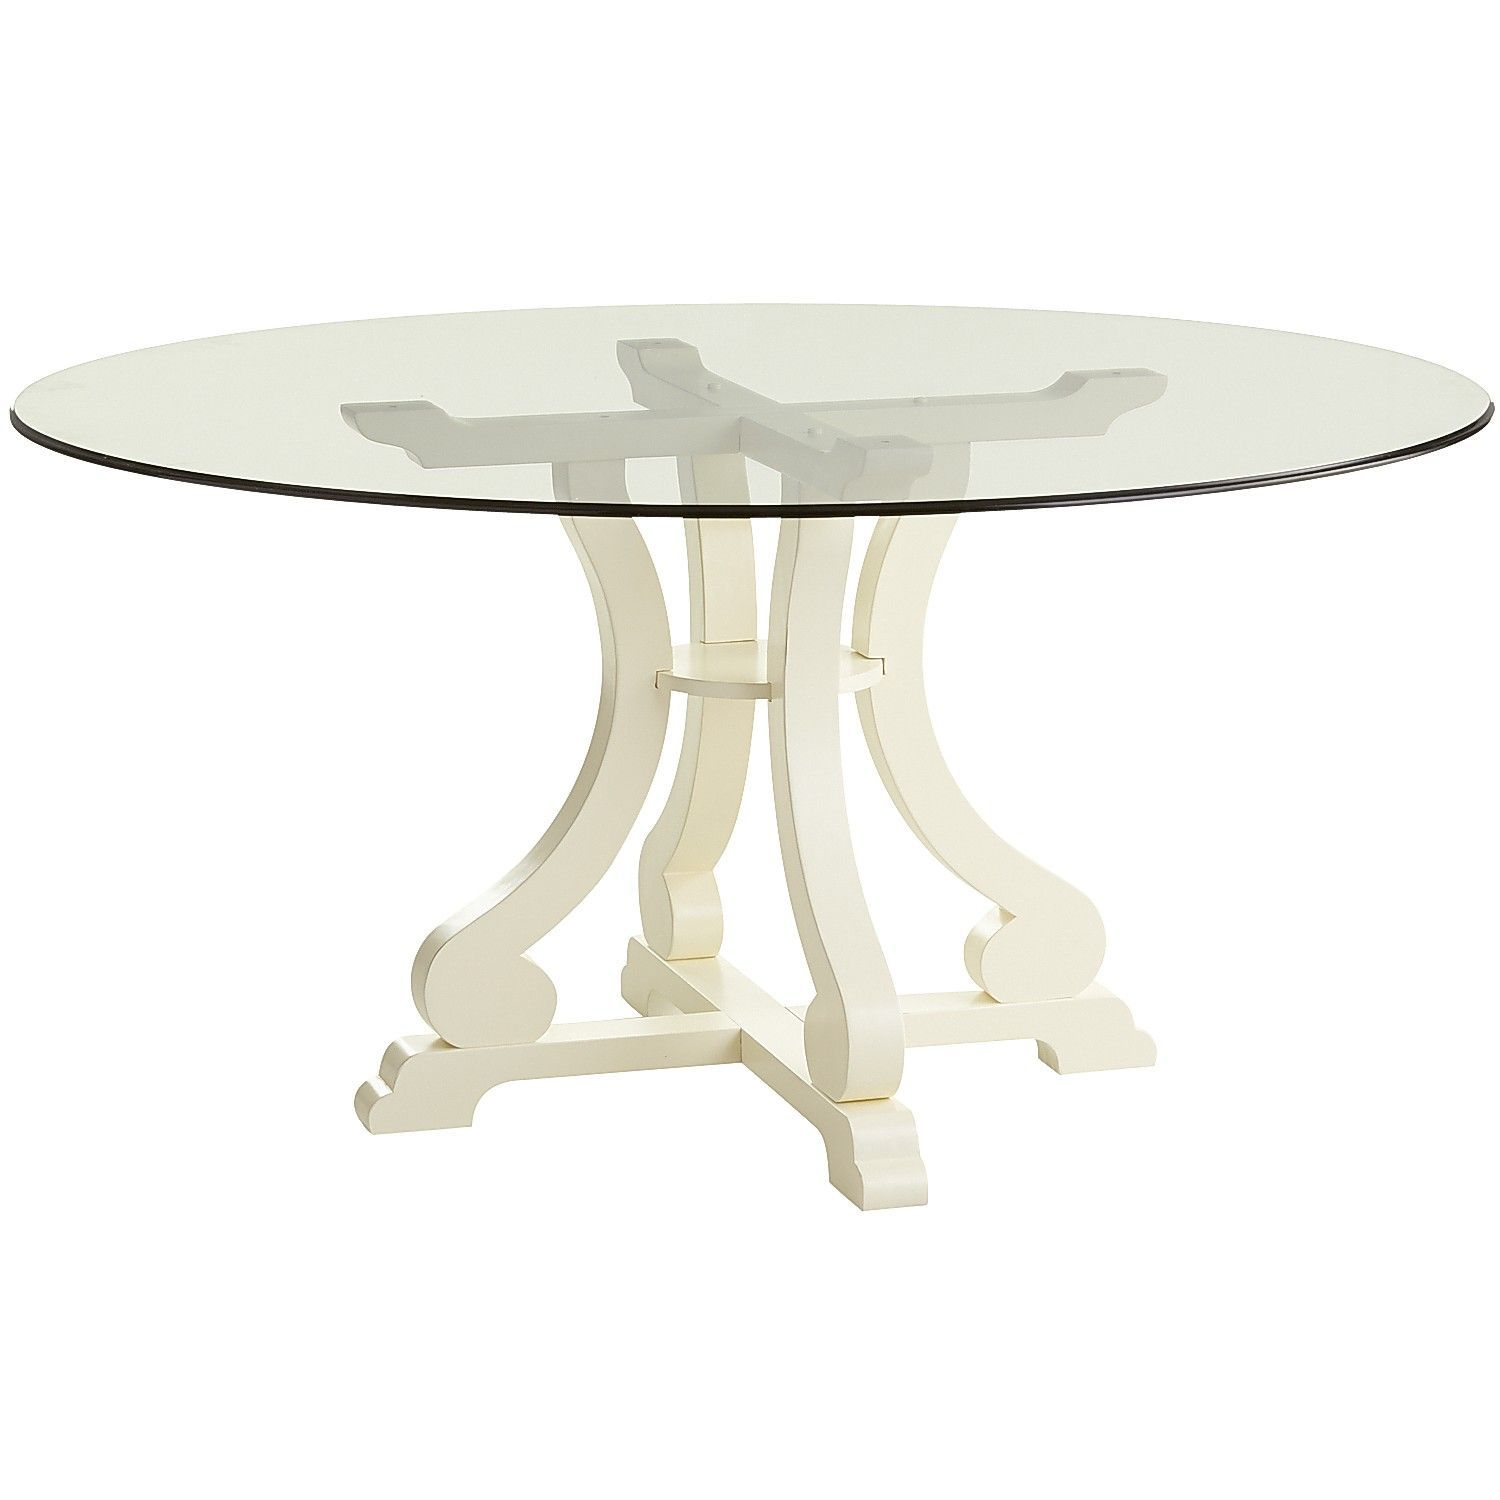 marchella antique white round dining table base round dining table white round dining table. Black Bedroom Furniture Sets. Home Design Ideas